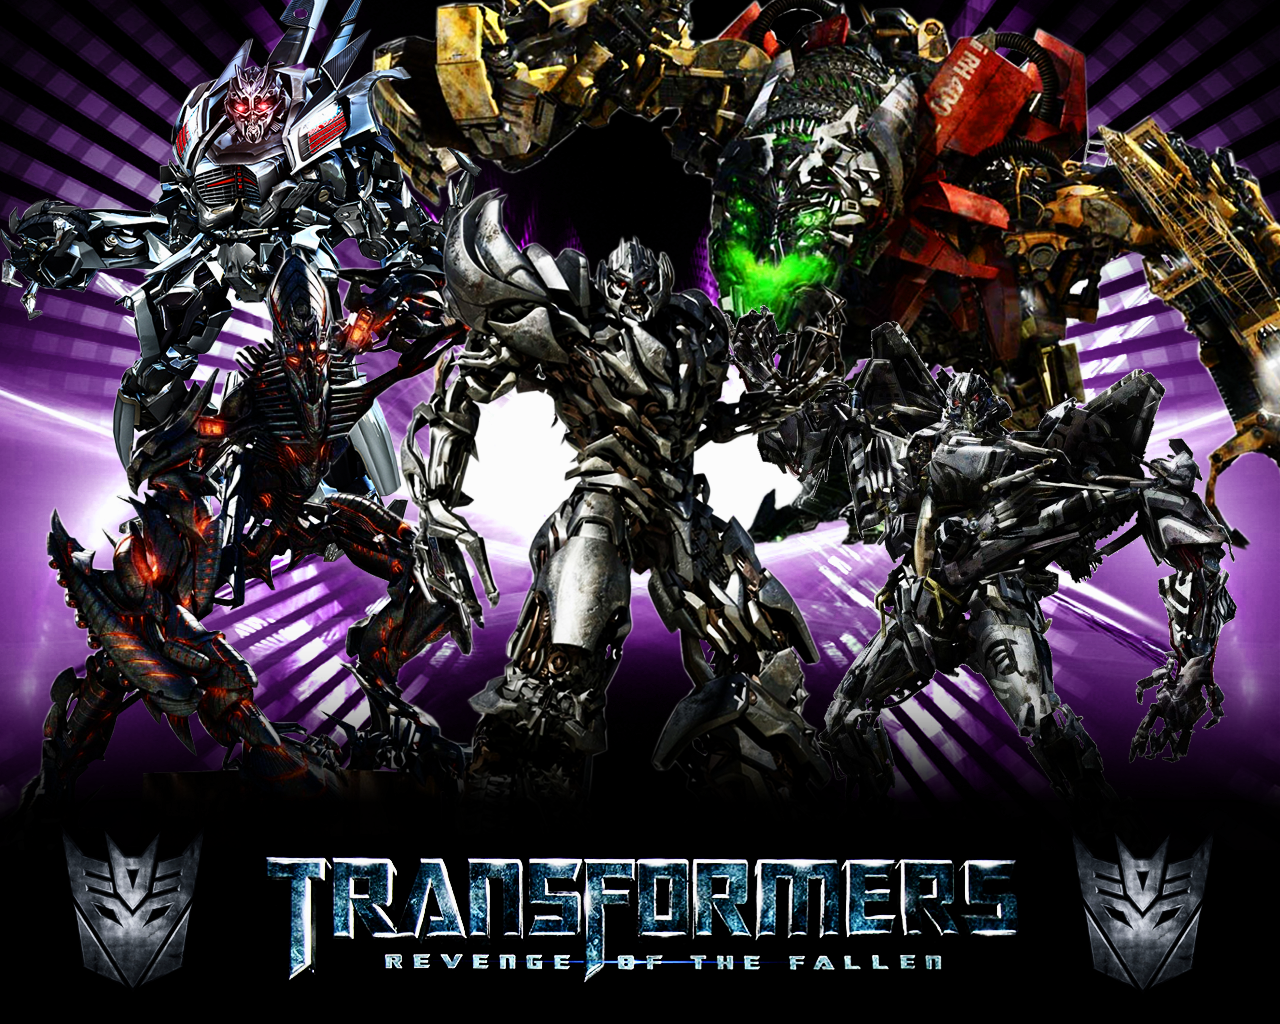 brunner about 15 layers in photoshop autobots vs decepticons wallpaper 1280x1024